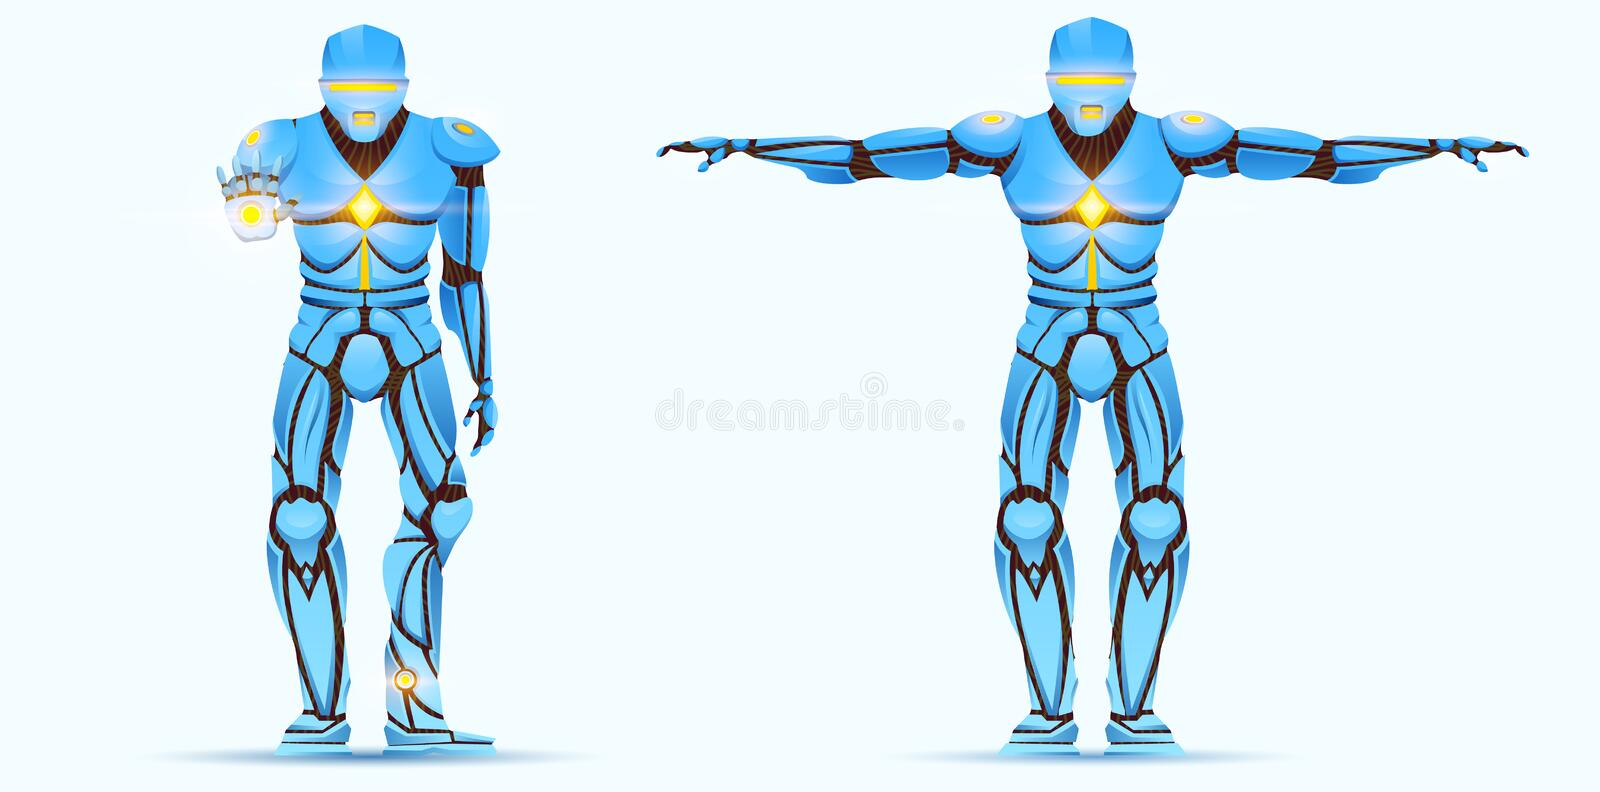 Stylish Cyborg man. Humanoid Robot with artificial intelligence, AI. character shows gestures. Android male, futuristic vector illustration